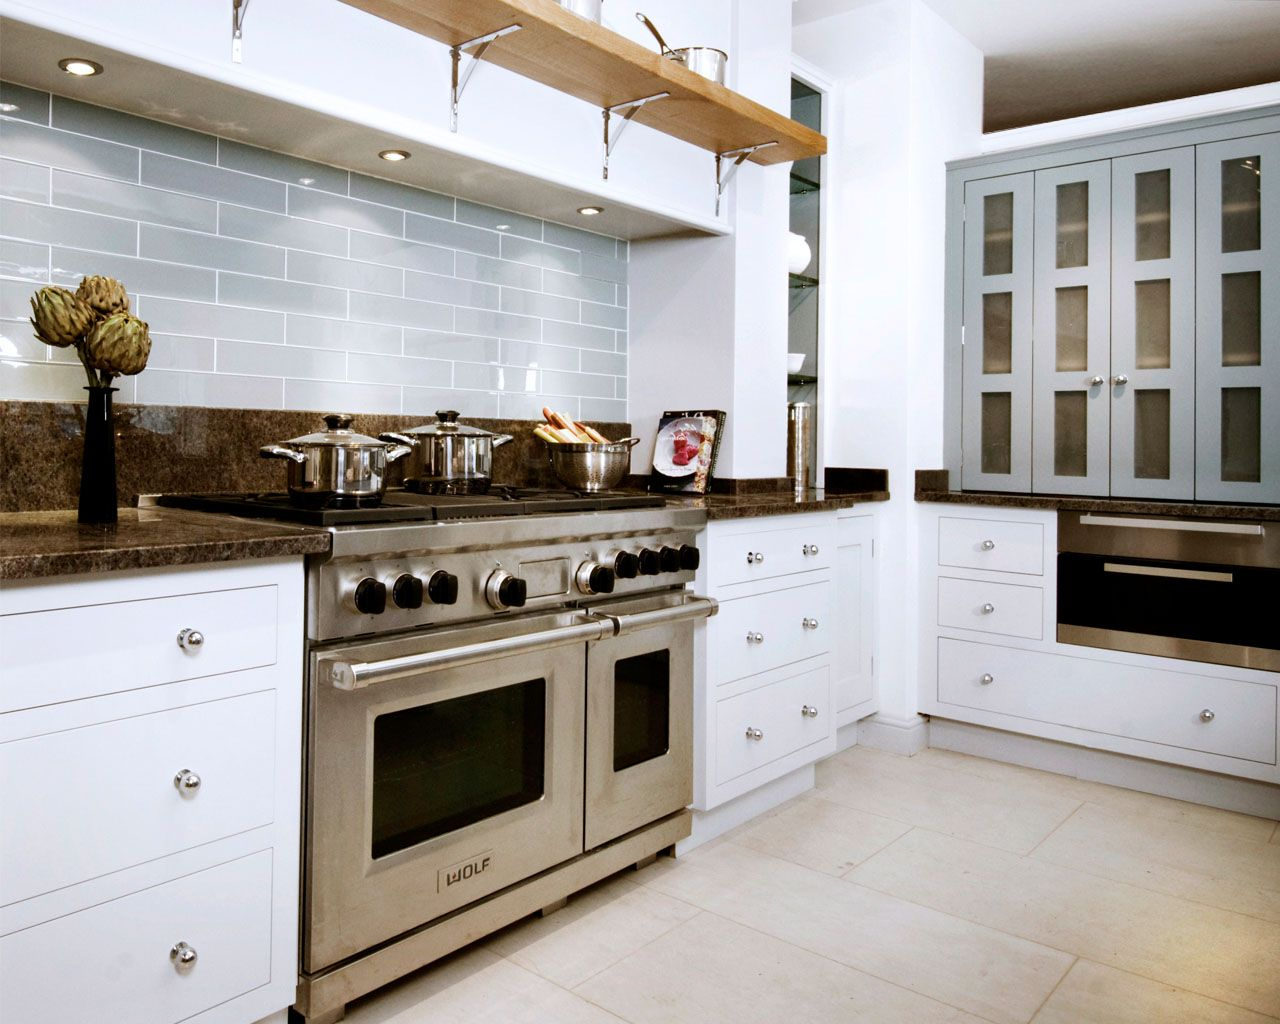 Beautifully Designed Bespoke Kitchens, Boot Room Design & Boot Room ...